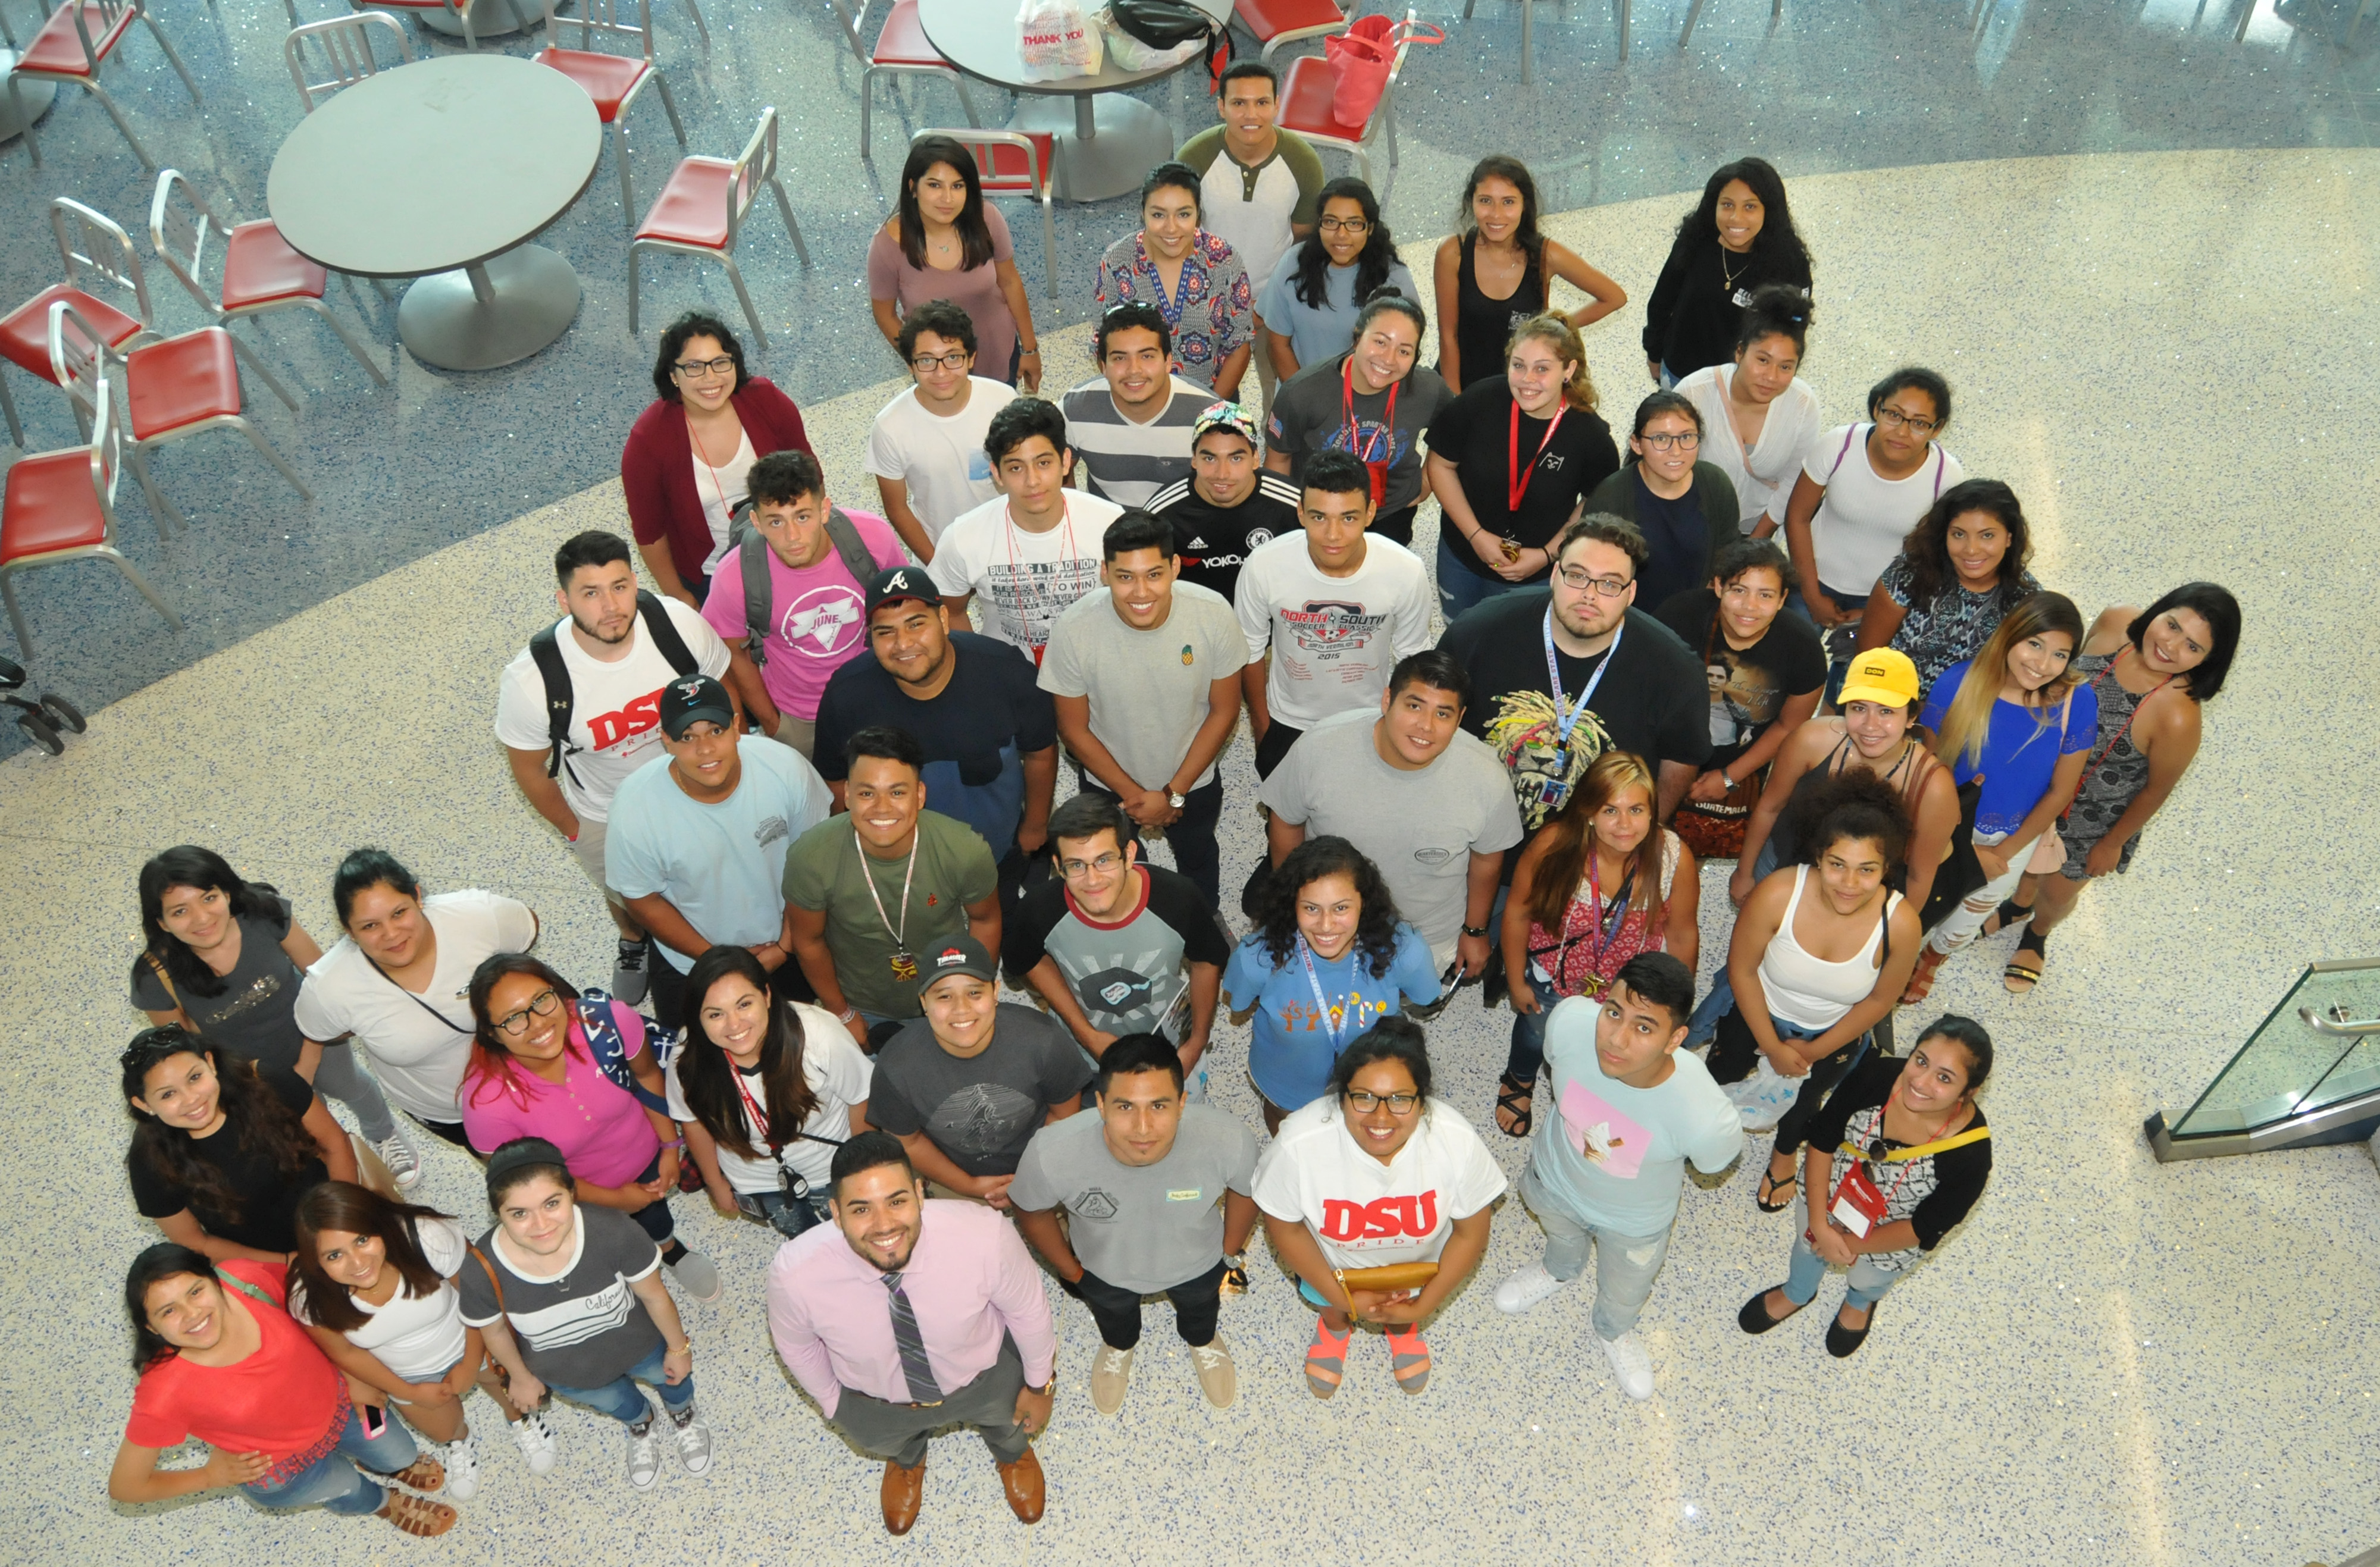 New Dreamers Group Begins Academic Journey At Dsu | Delaware With Delaware State University Dreamers